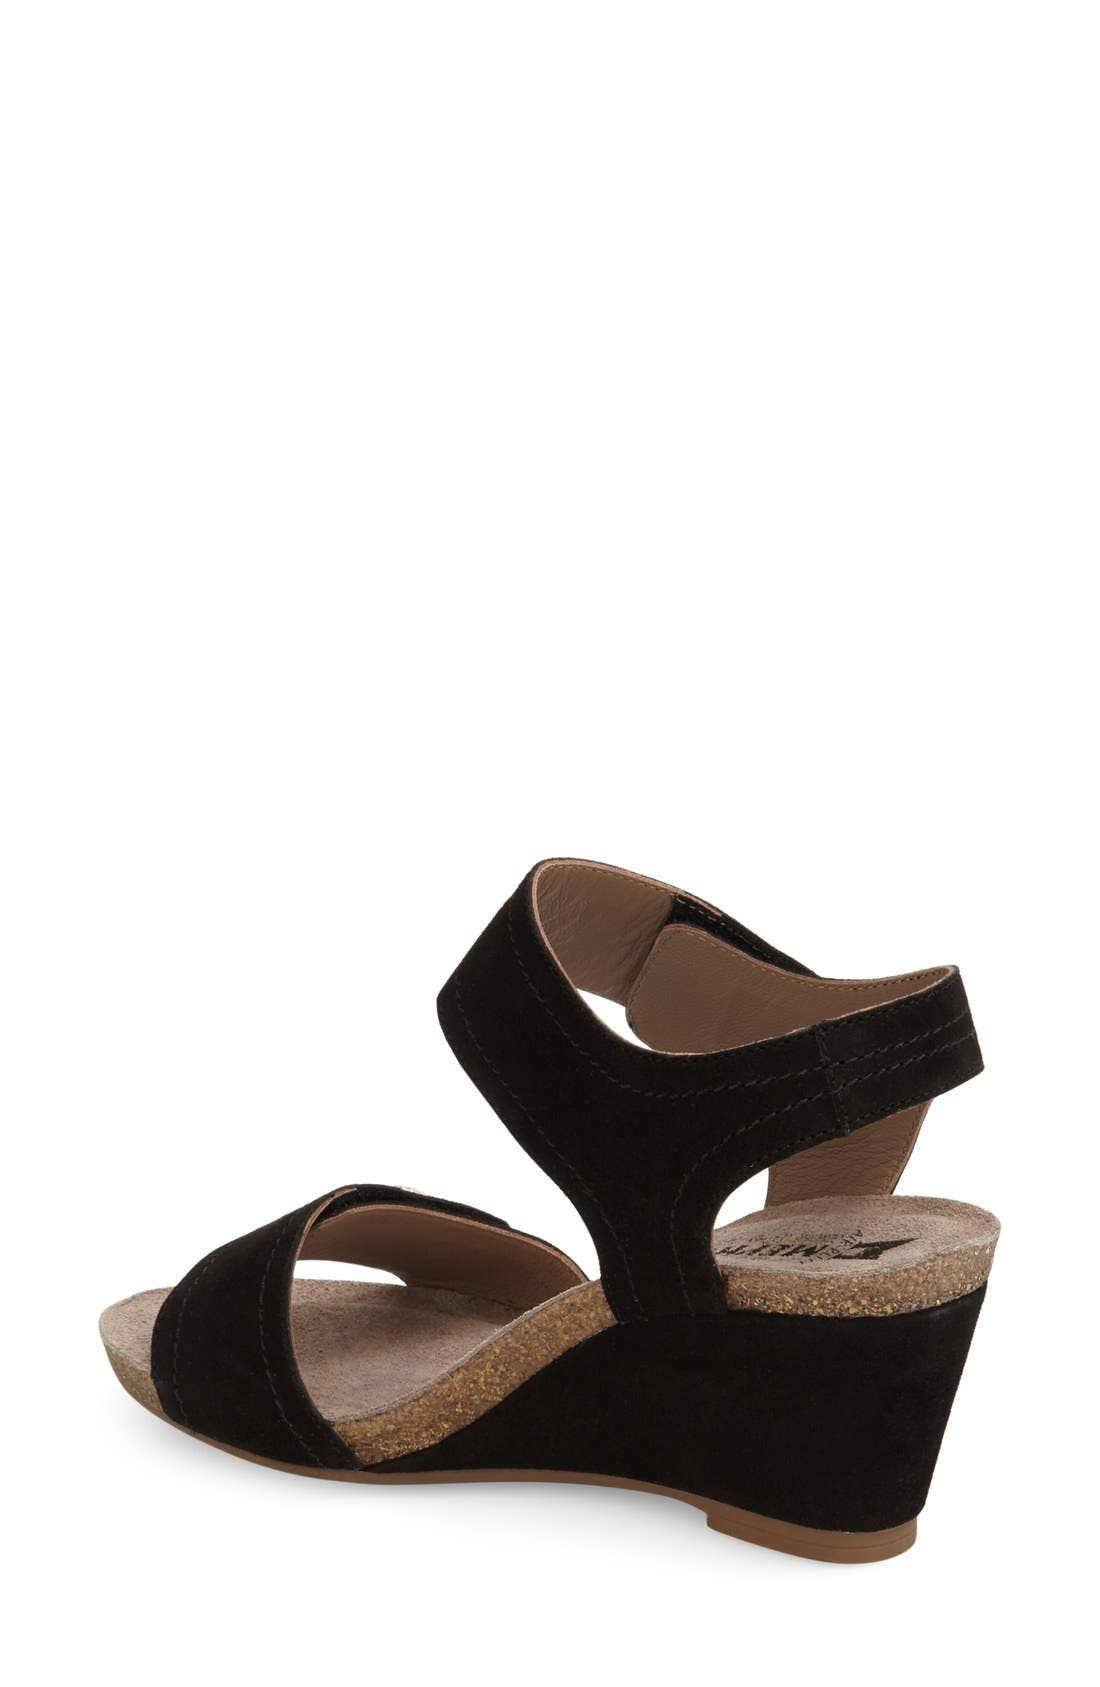 'Jackie' Wedge Sandal,                             Alternate thumbnail 2, color,                             Black Premium Suede